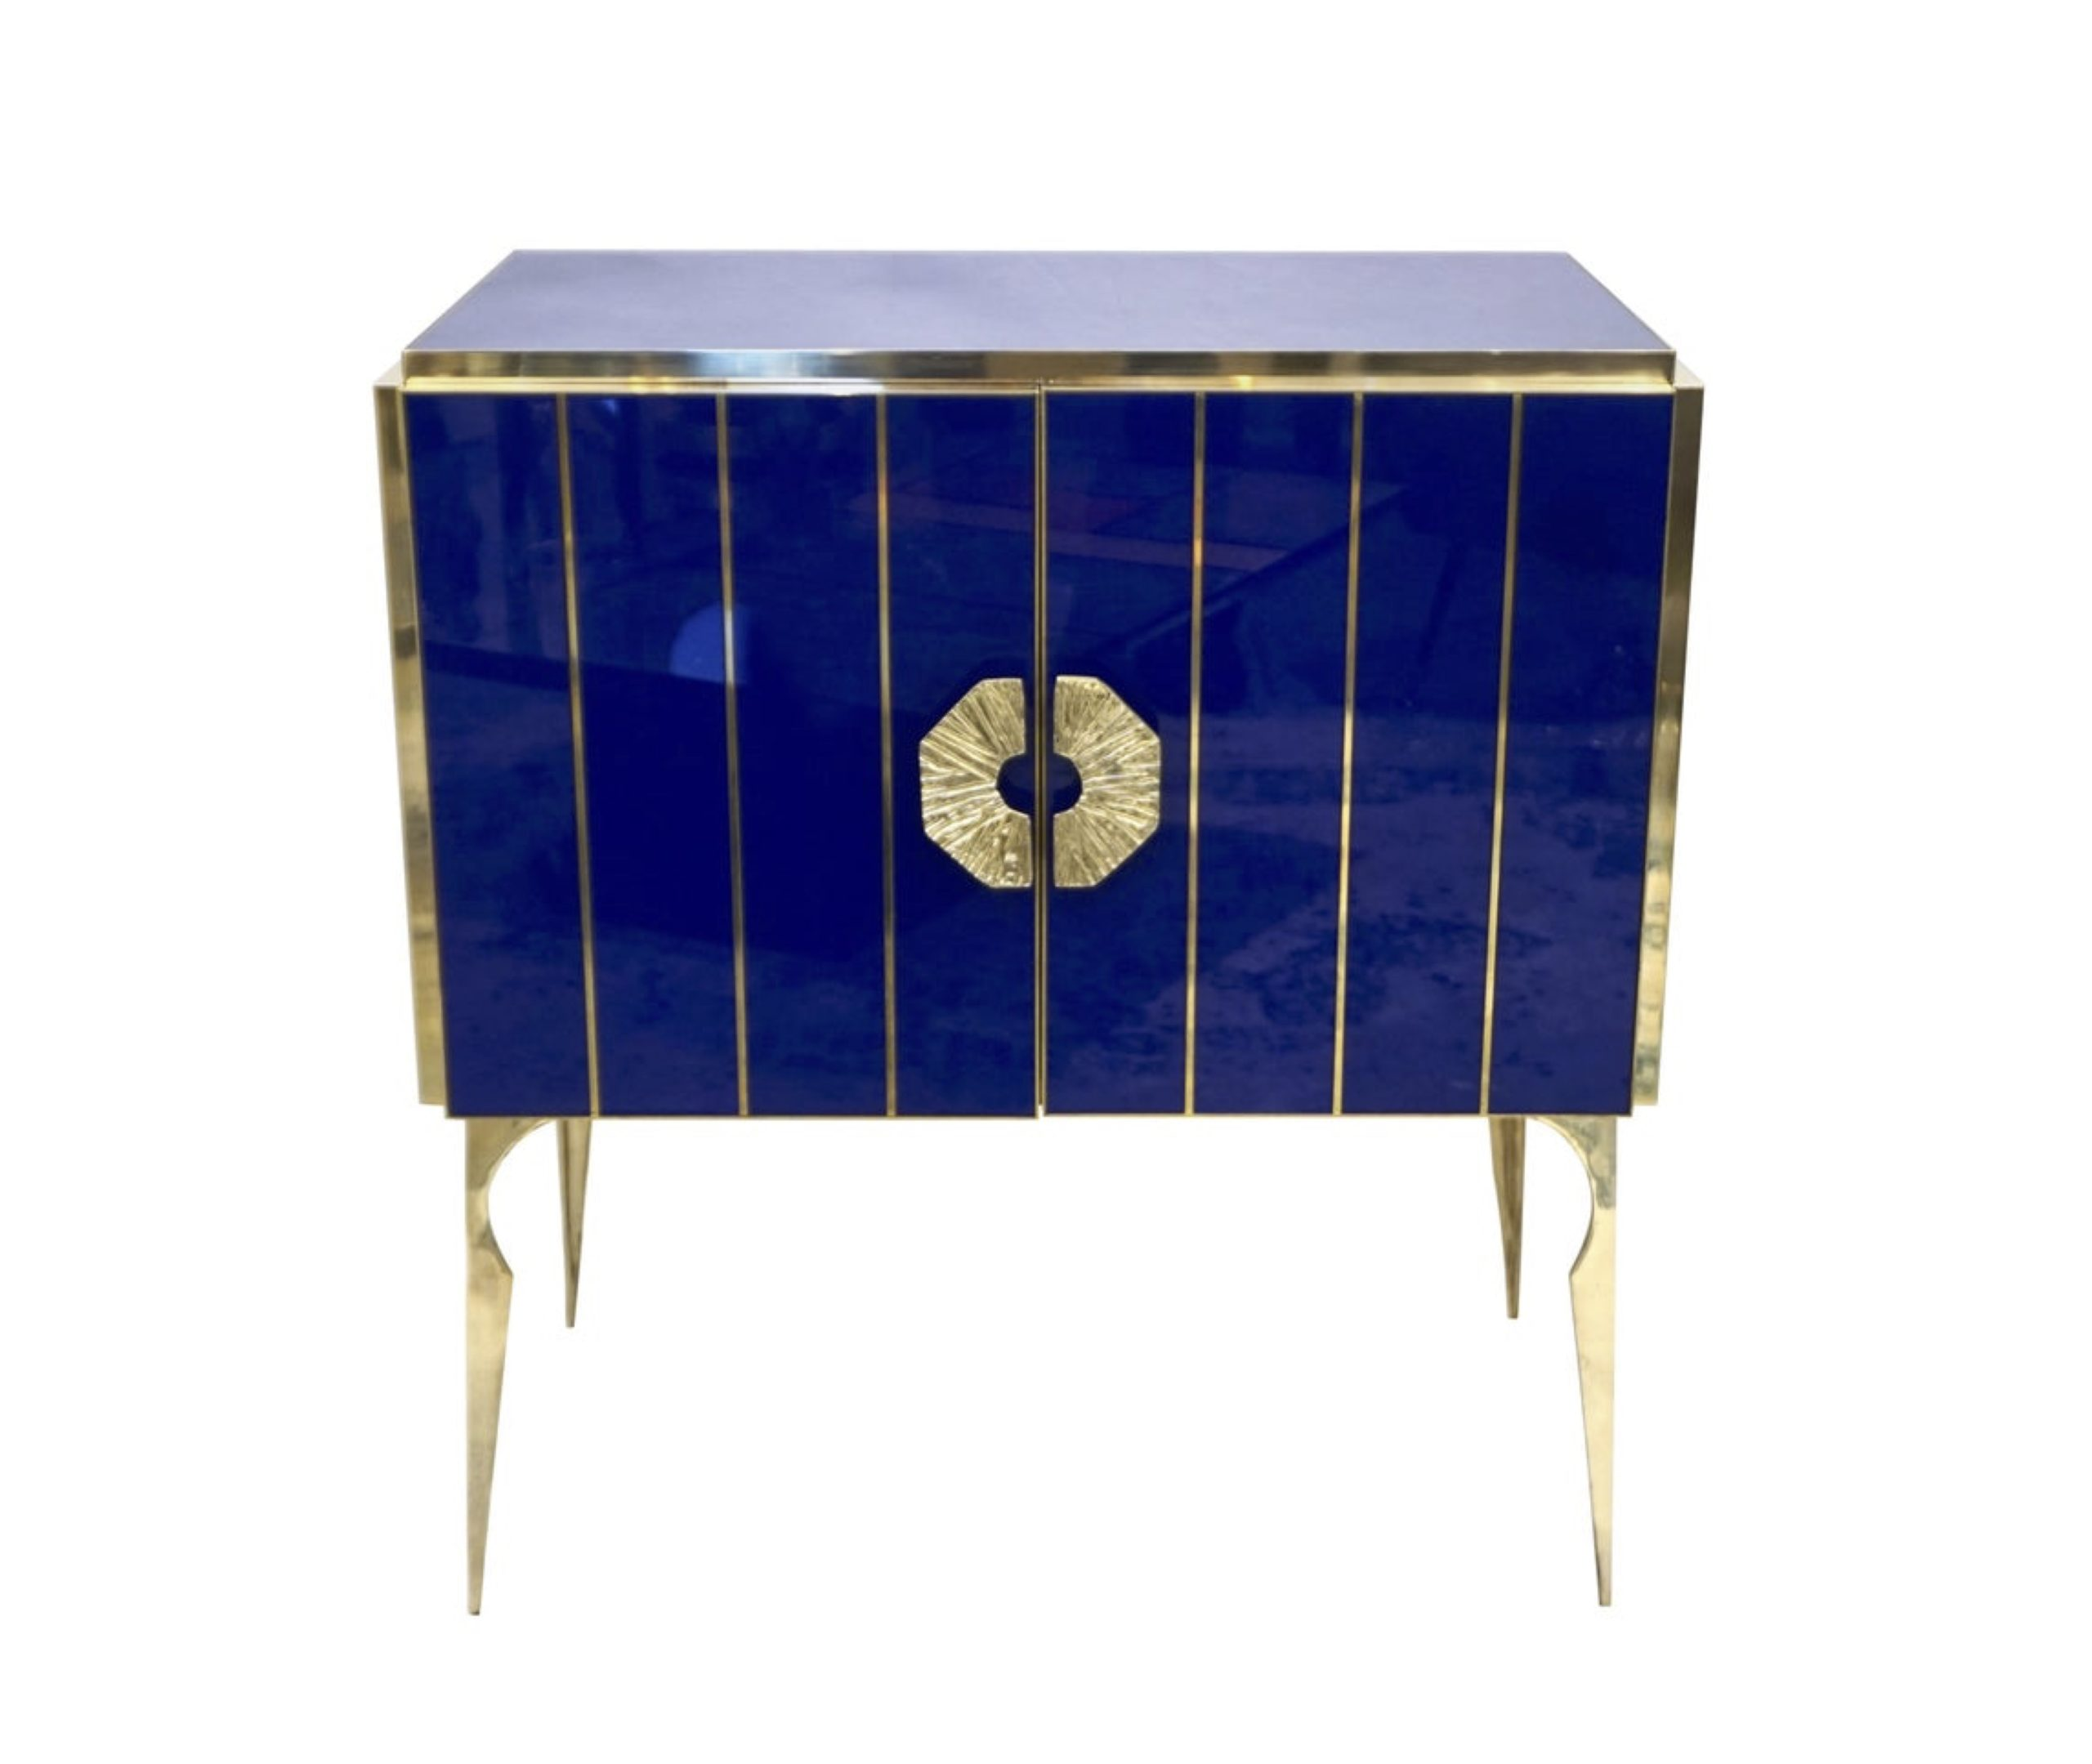 MAIN_cosulich_interiors_and_antiques_products_new_york_design_center_blue_cabinet_21087312_master-scaled-1